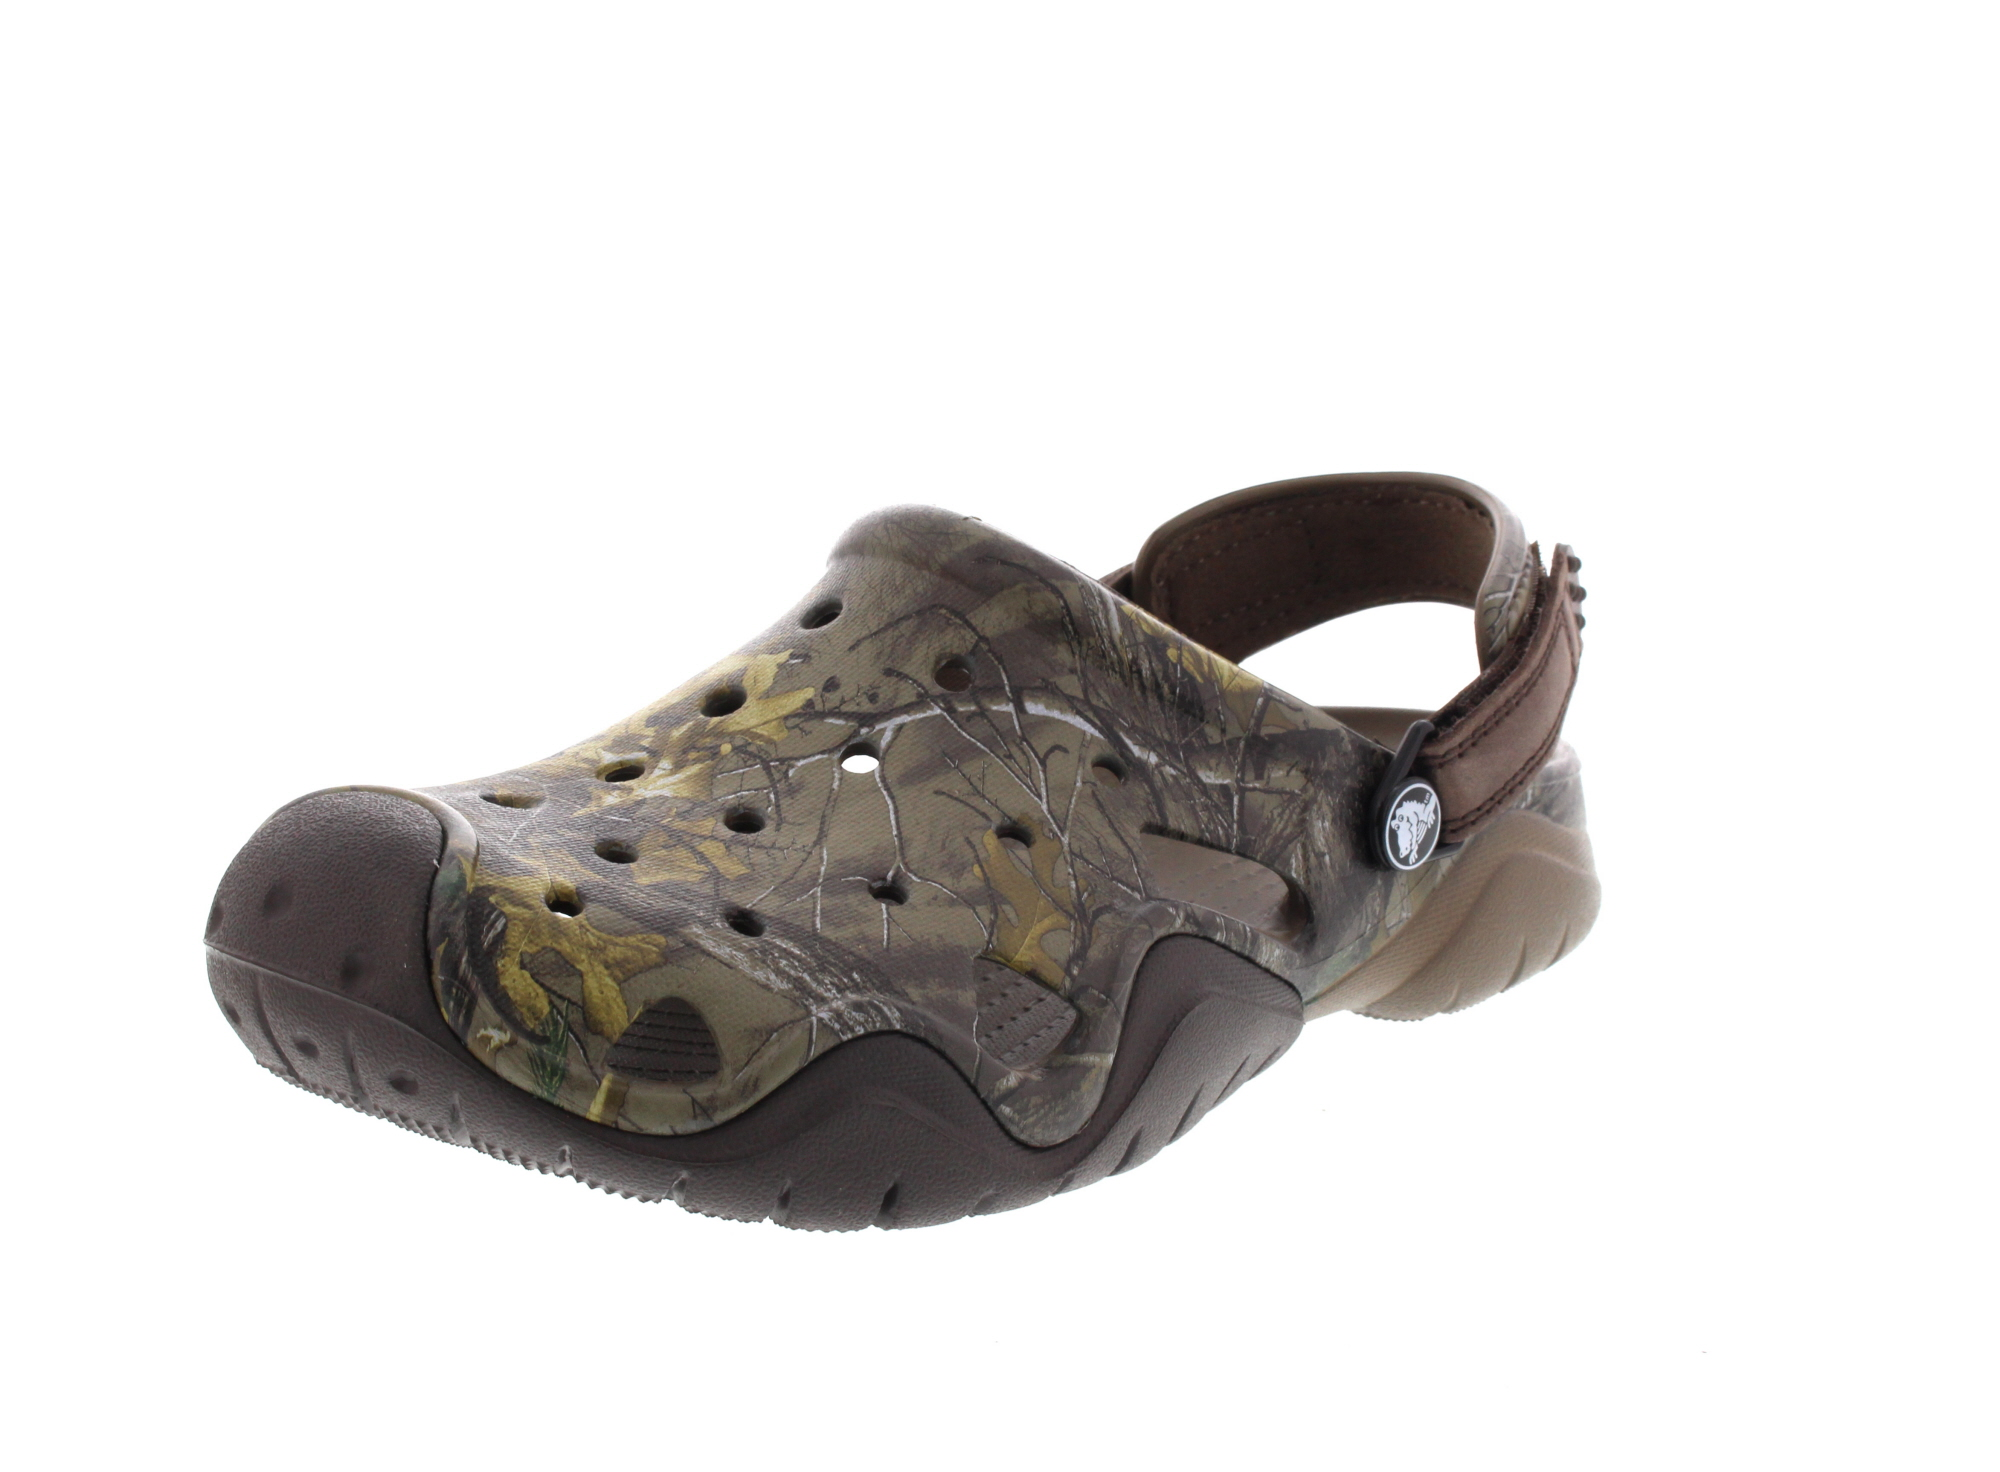 CROCS Herrenschuhe - SWIFTWATER REALTREE Xtra - walnut0